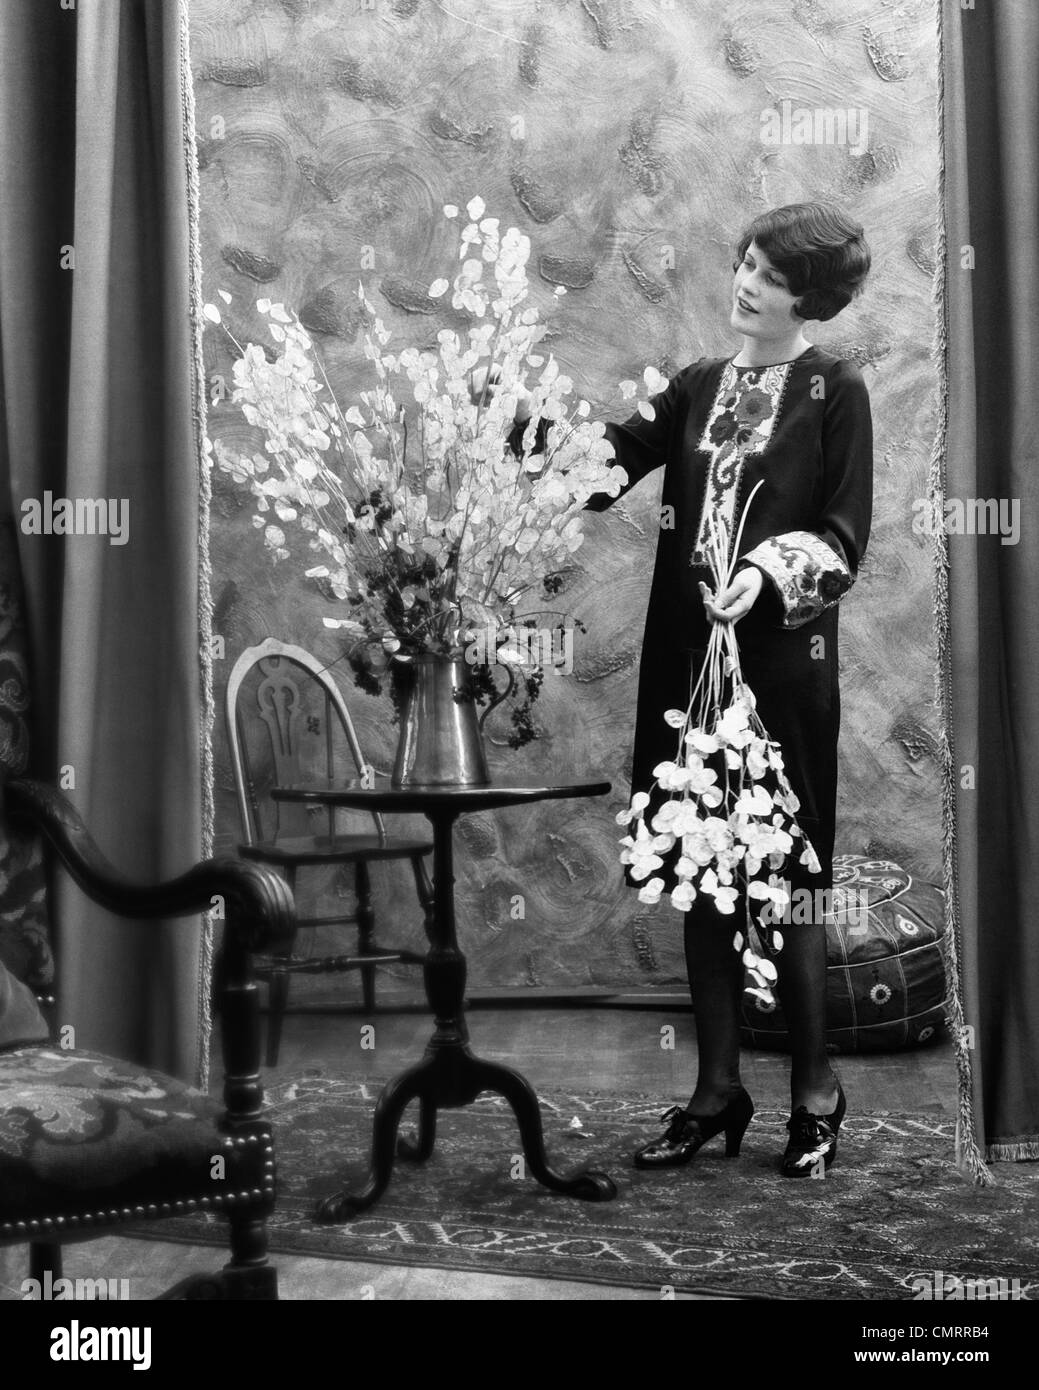 Années 1920 FEMME ARRANGING FLOWERS EN PICHET EN ALUMINIUM Photo Stock